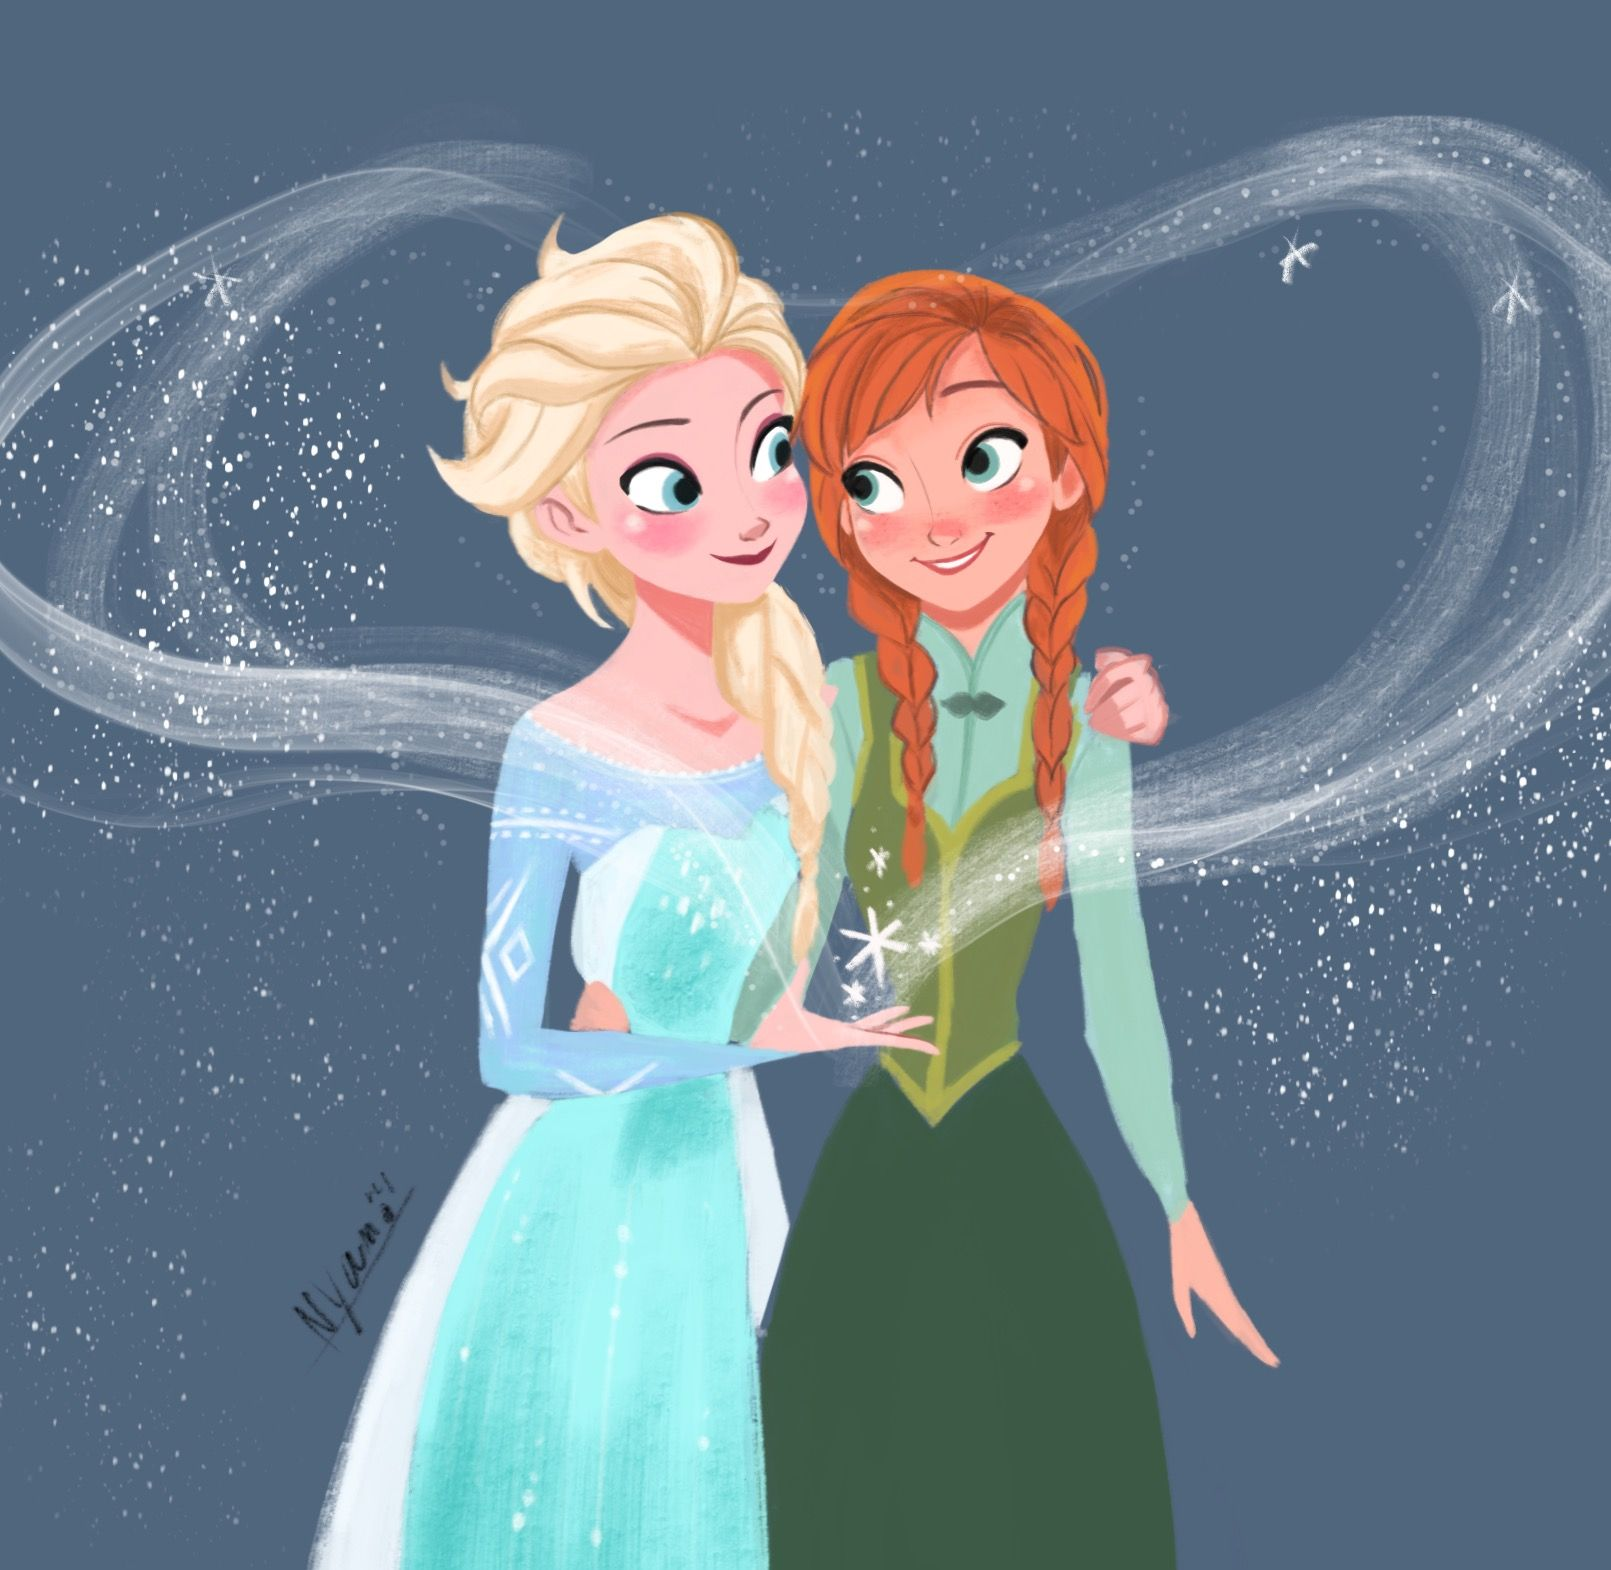 Elsa and Anna - Frozen ❄️